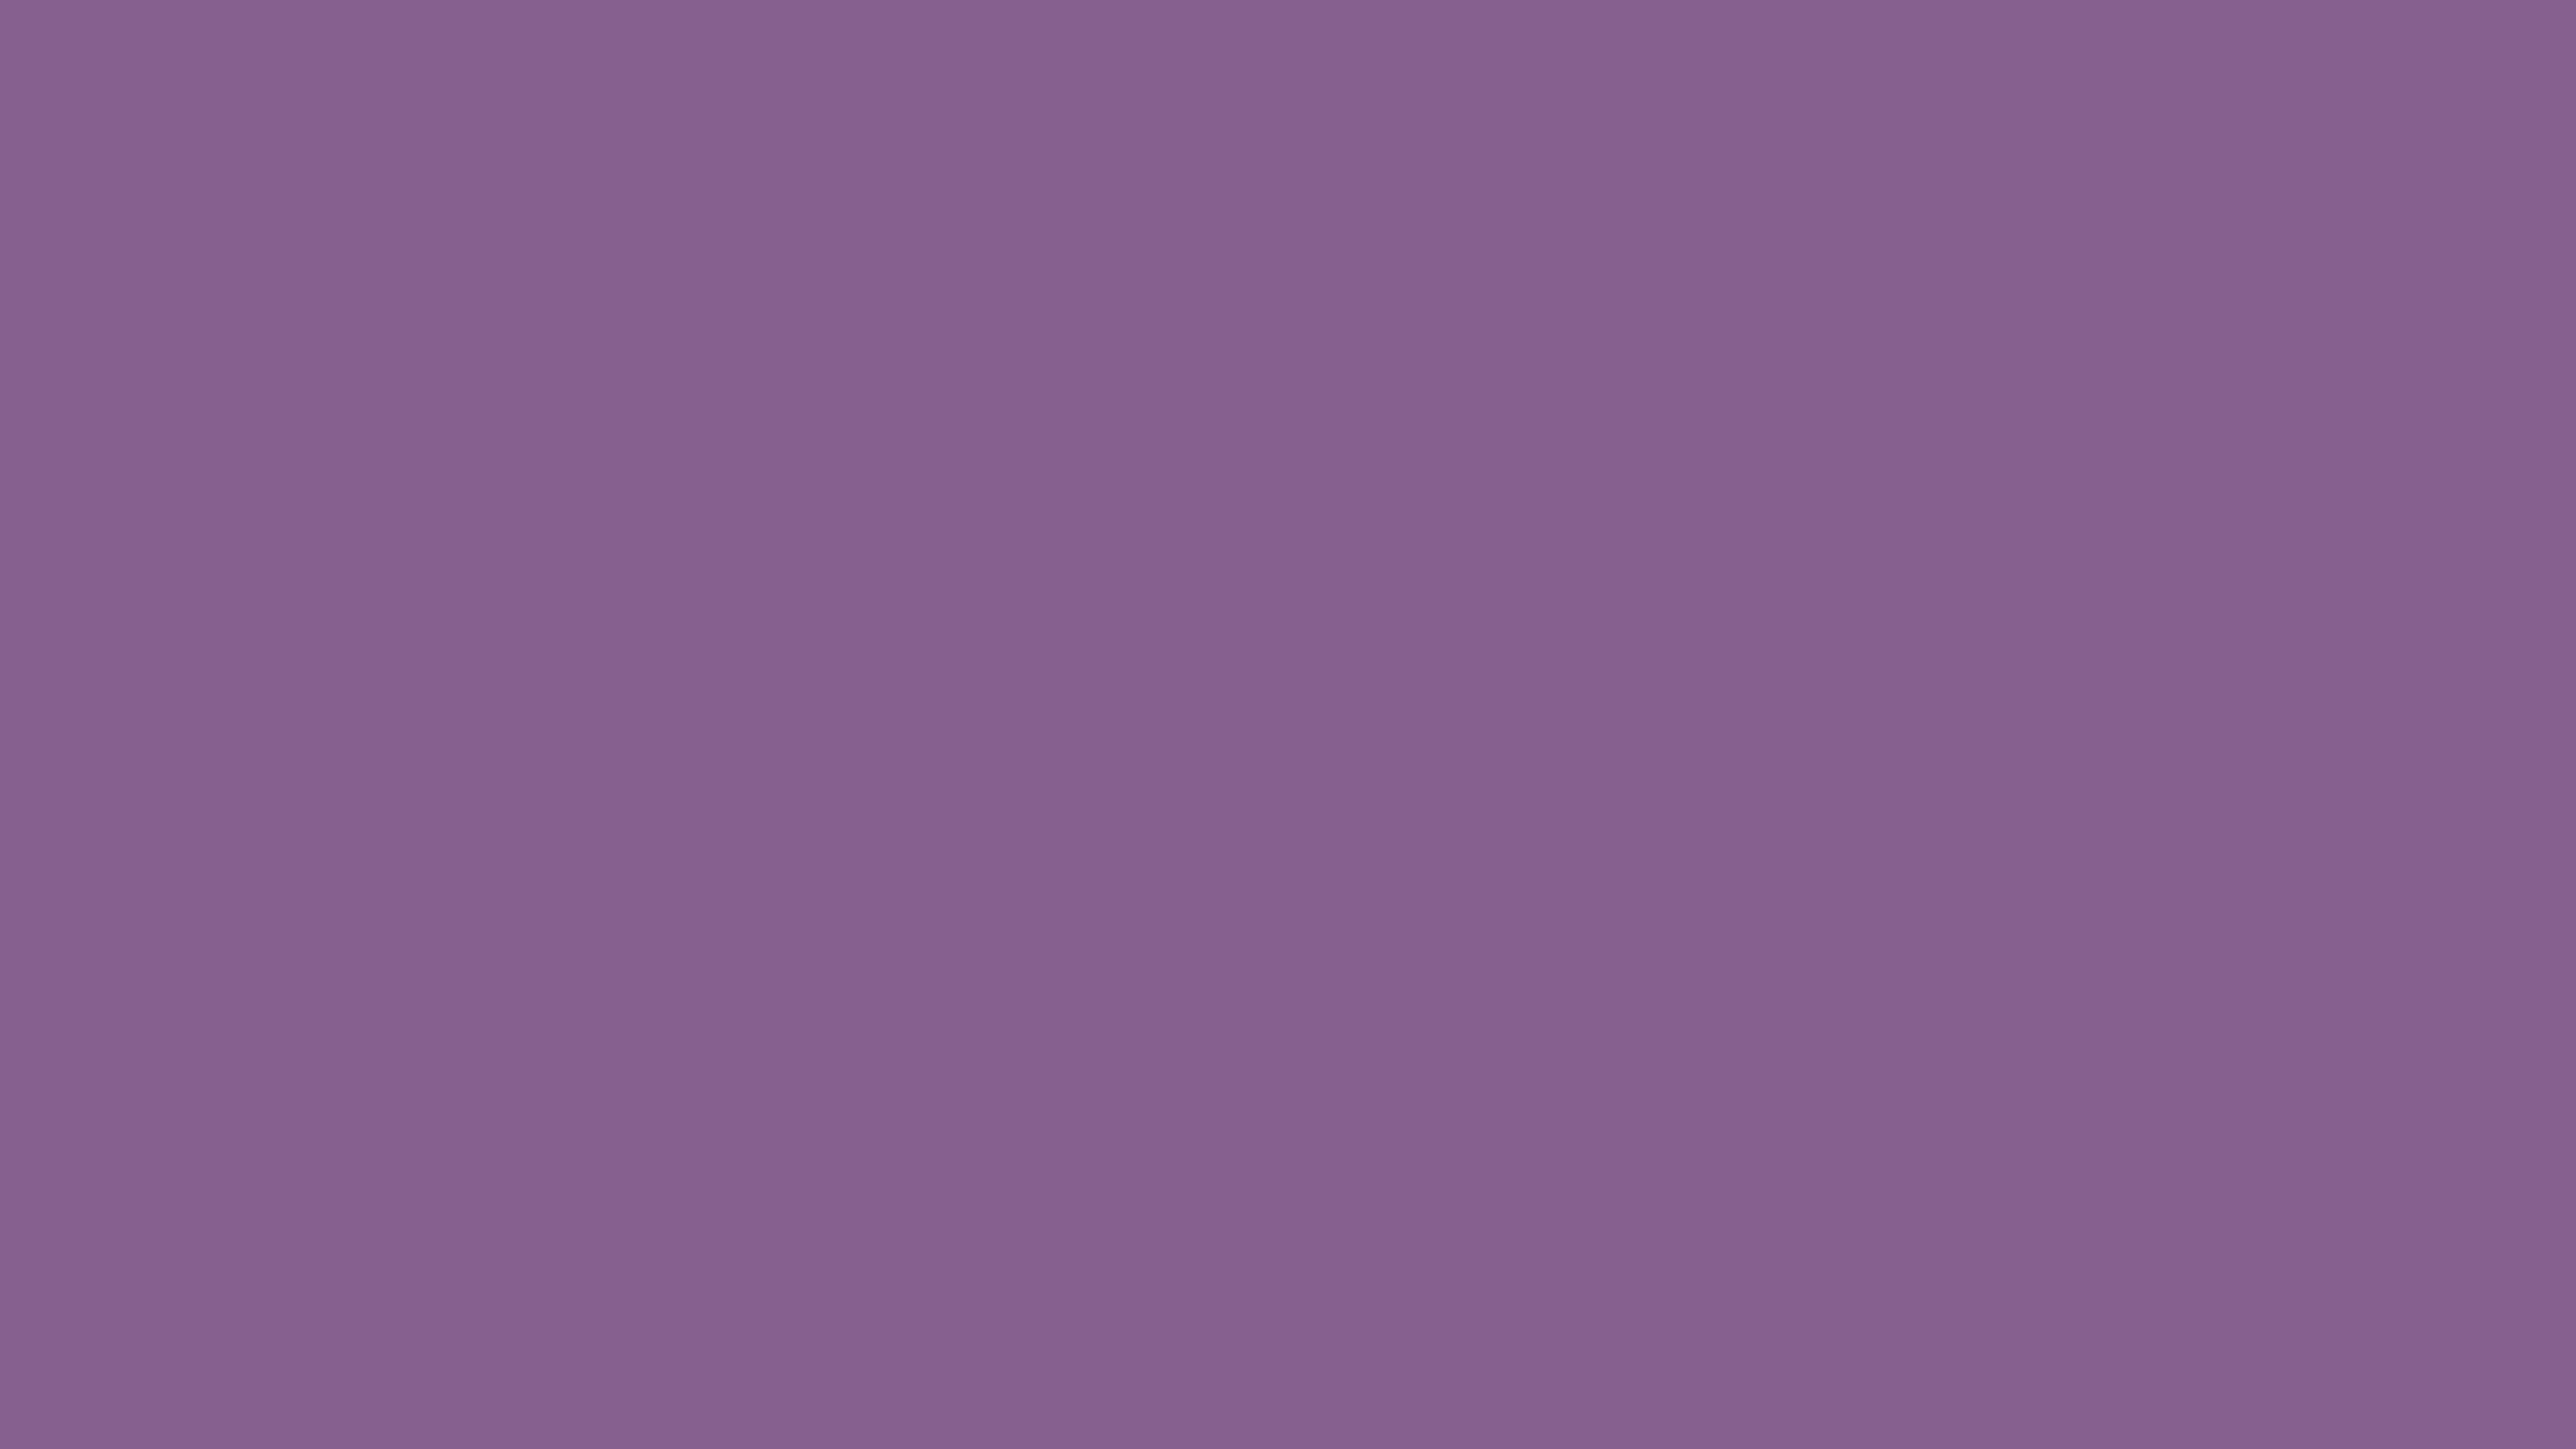 3840x2160 French Lilac Solid Color Background